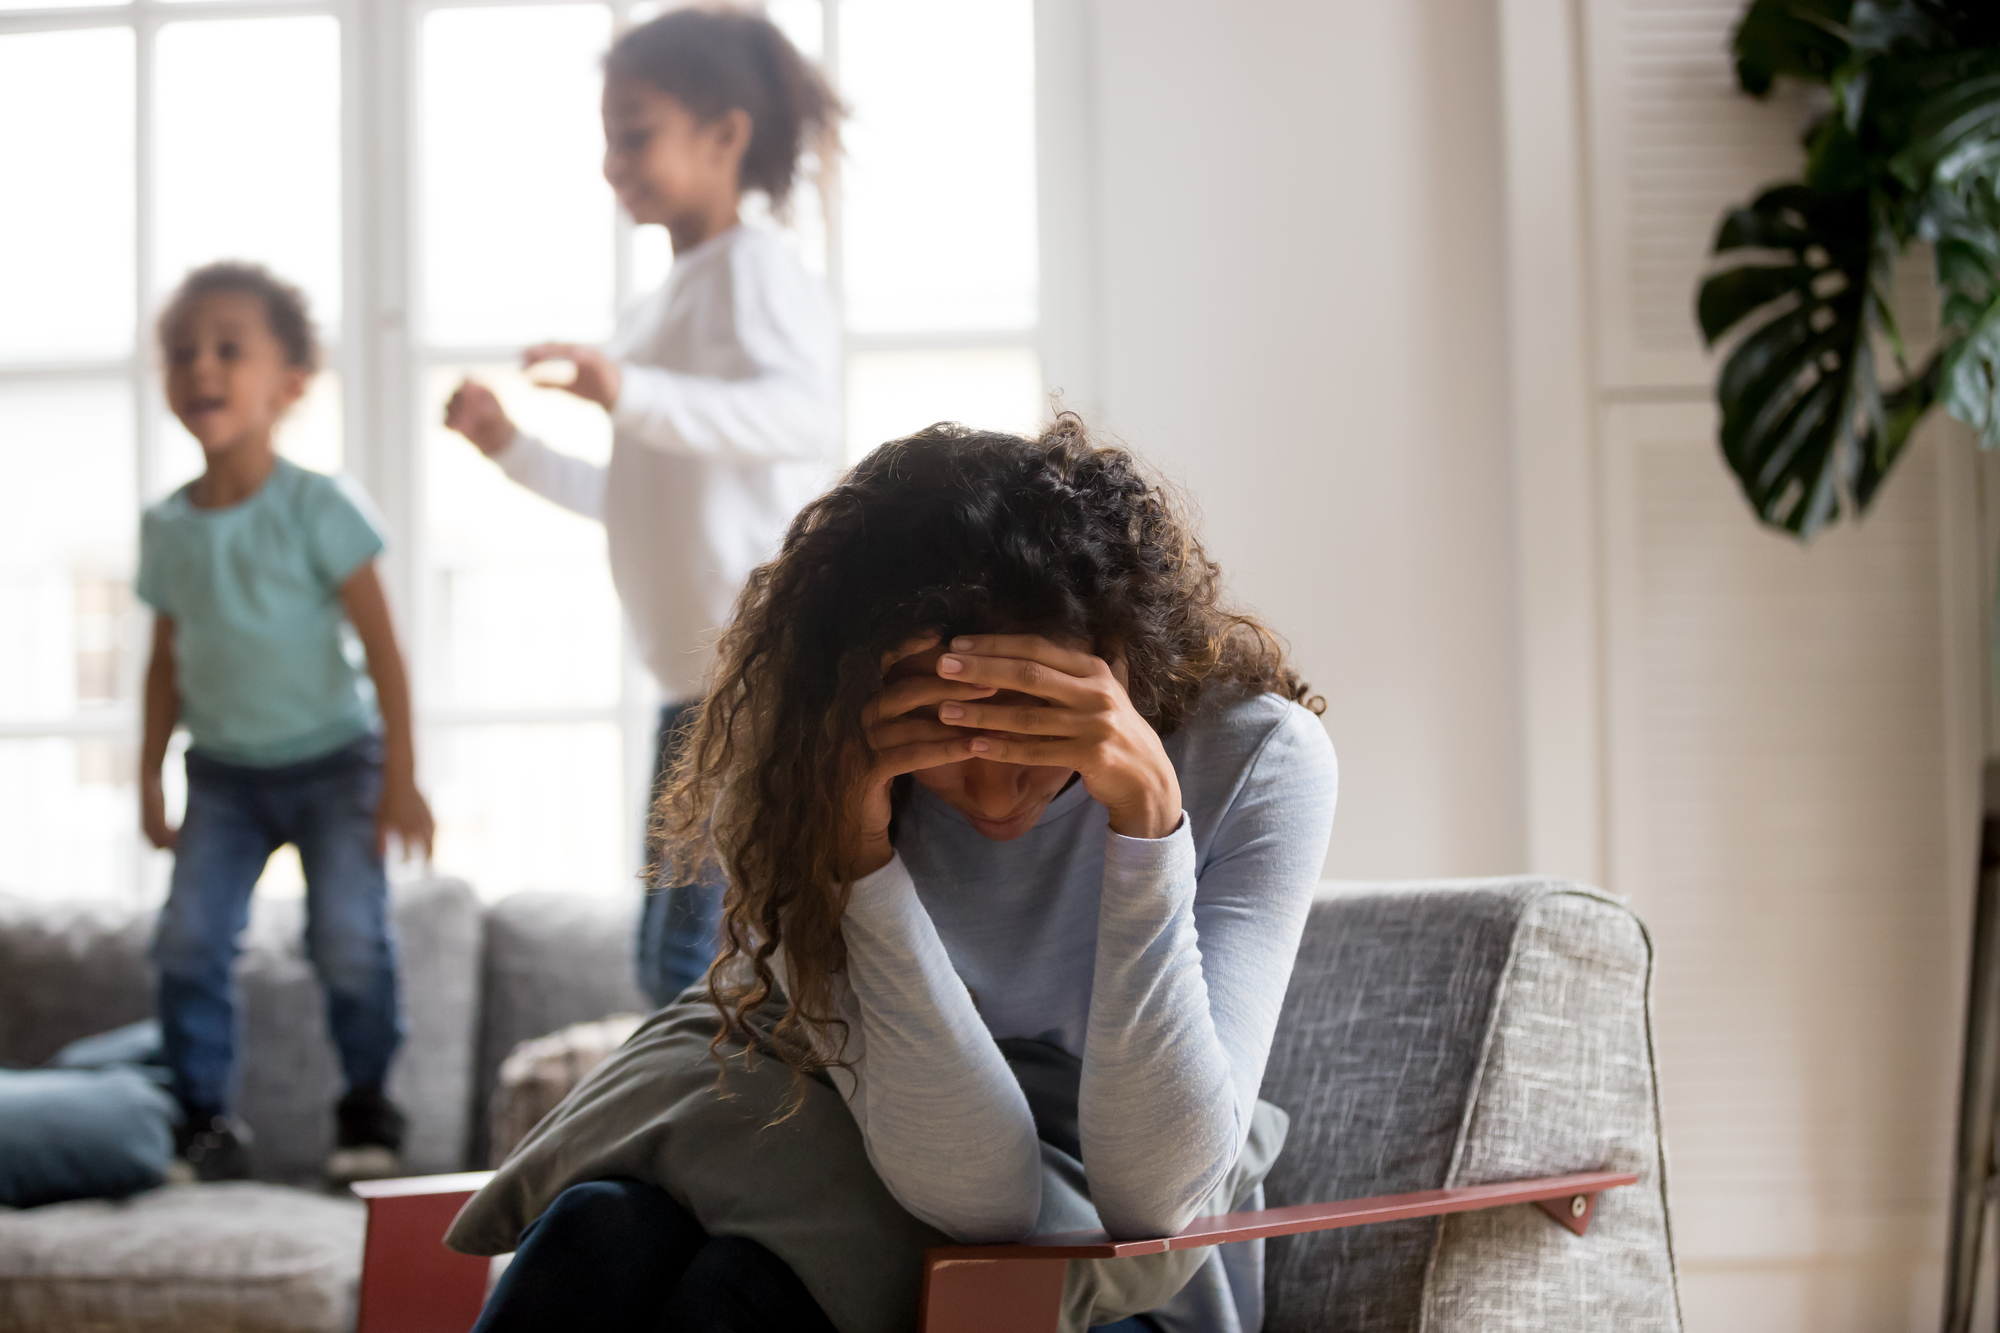 migraines affect family life